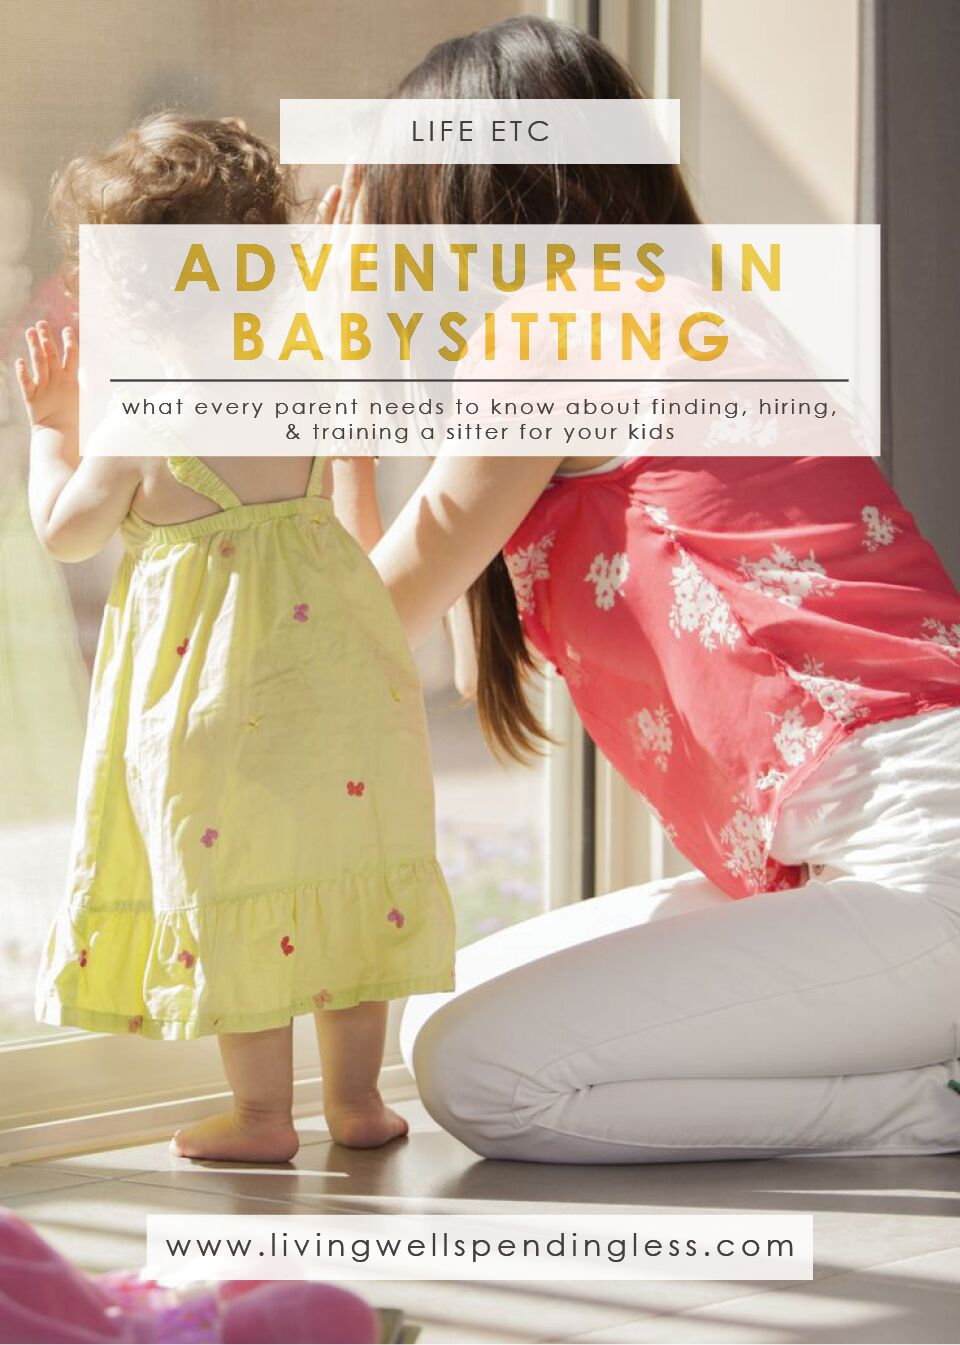 How to Find a Babysitter | Babysitting 101 | Tips for Parents | Parenting | Life With Kids